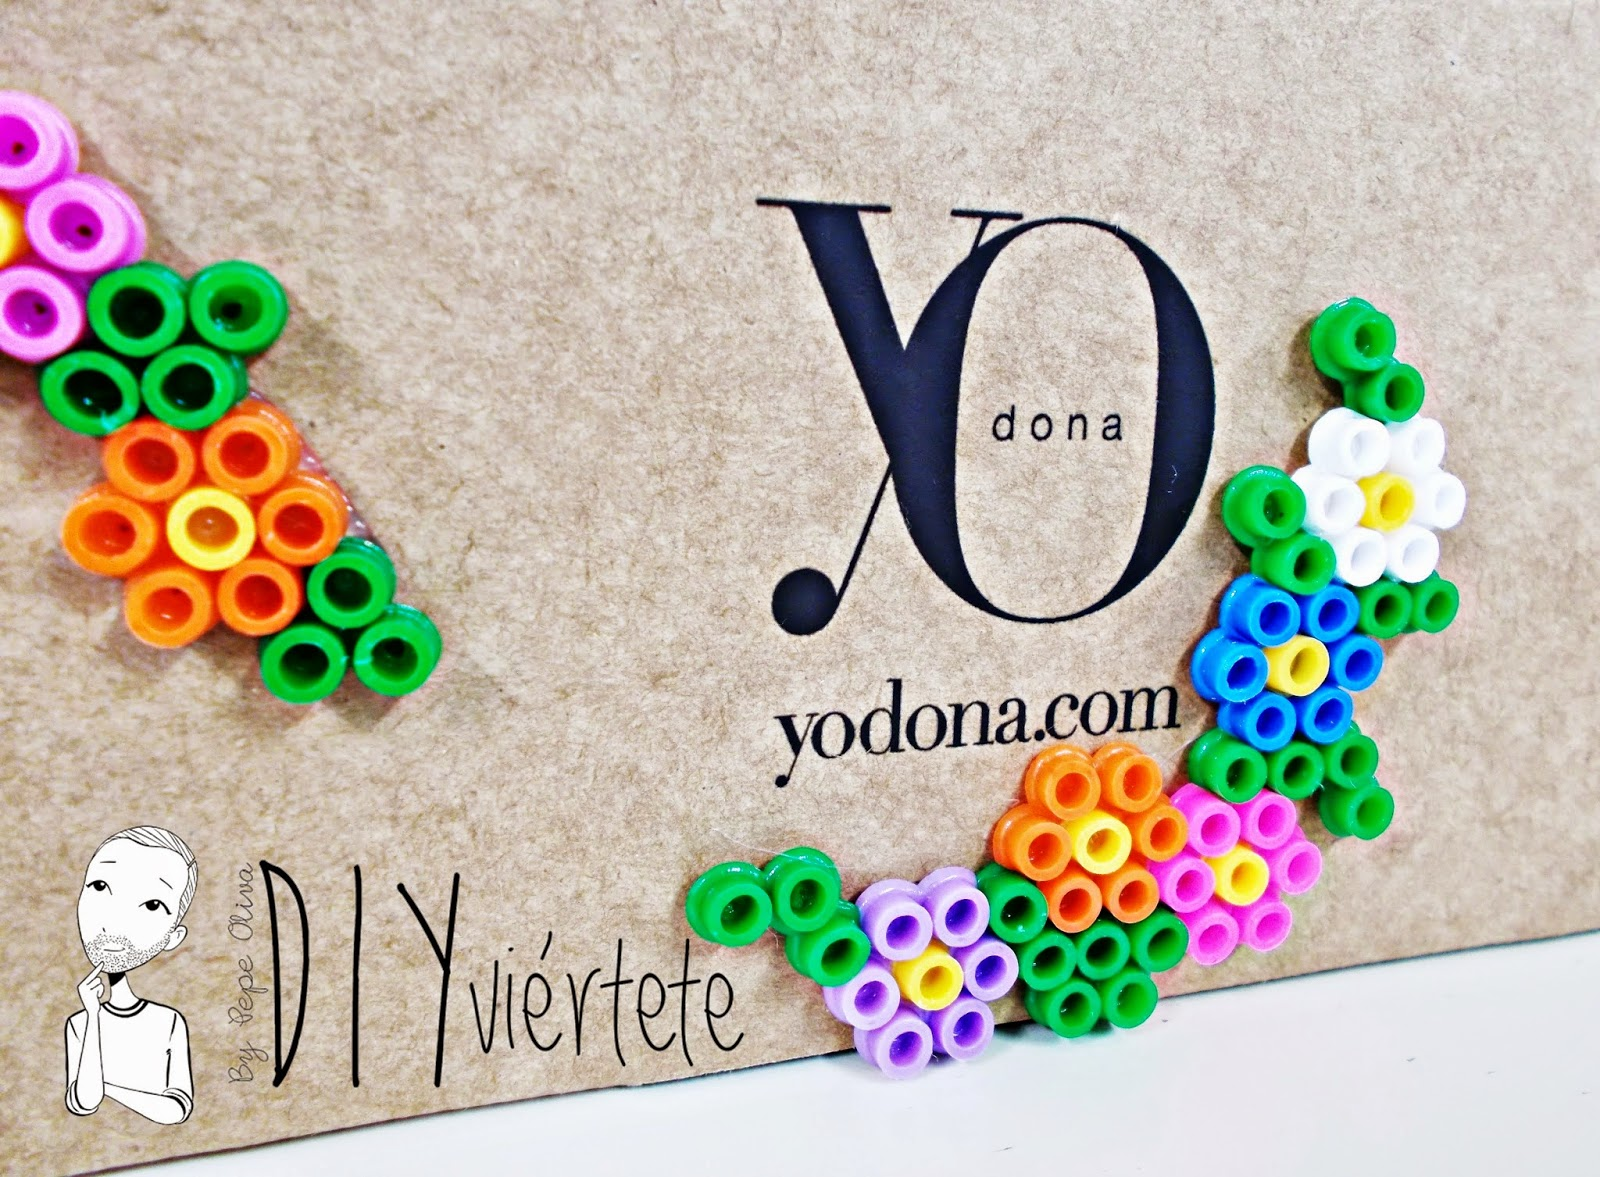 DIY-Do It Yourself-caja-cartón-selfpackaging-customizar-handbox-yodona-diyhuntersday-craftlovers-6